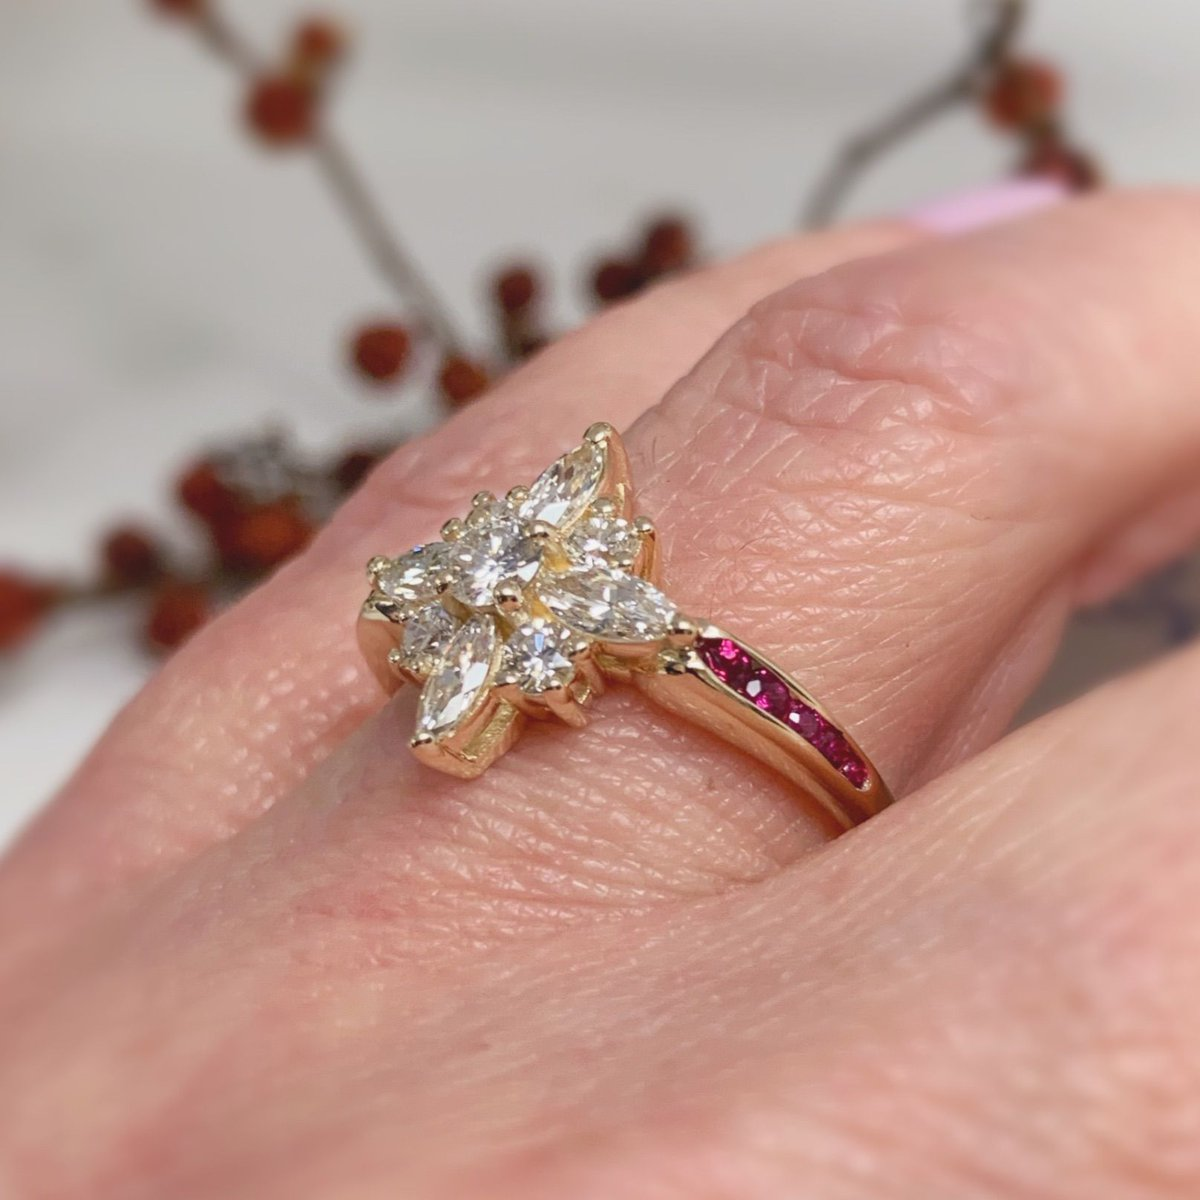 Unique starburst ring with rubies set in a yellow gold band! This custom engagement ring is simply breathtaking.  #diamondring #diamondrings #engagementring #diamond #diamonds #ringforher #weddingjewelry #customjewelry #customengagementring #rubiesanddiamonds #luxuryringpic.twitter.com/20xFS3Vz66